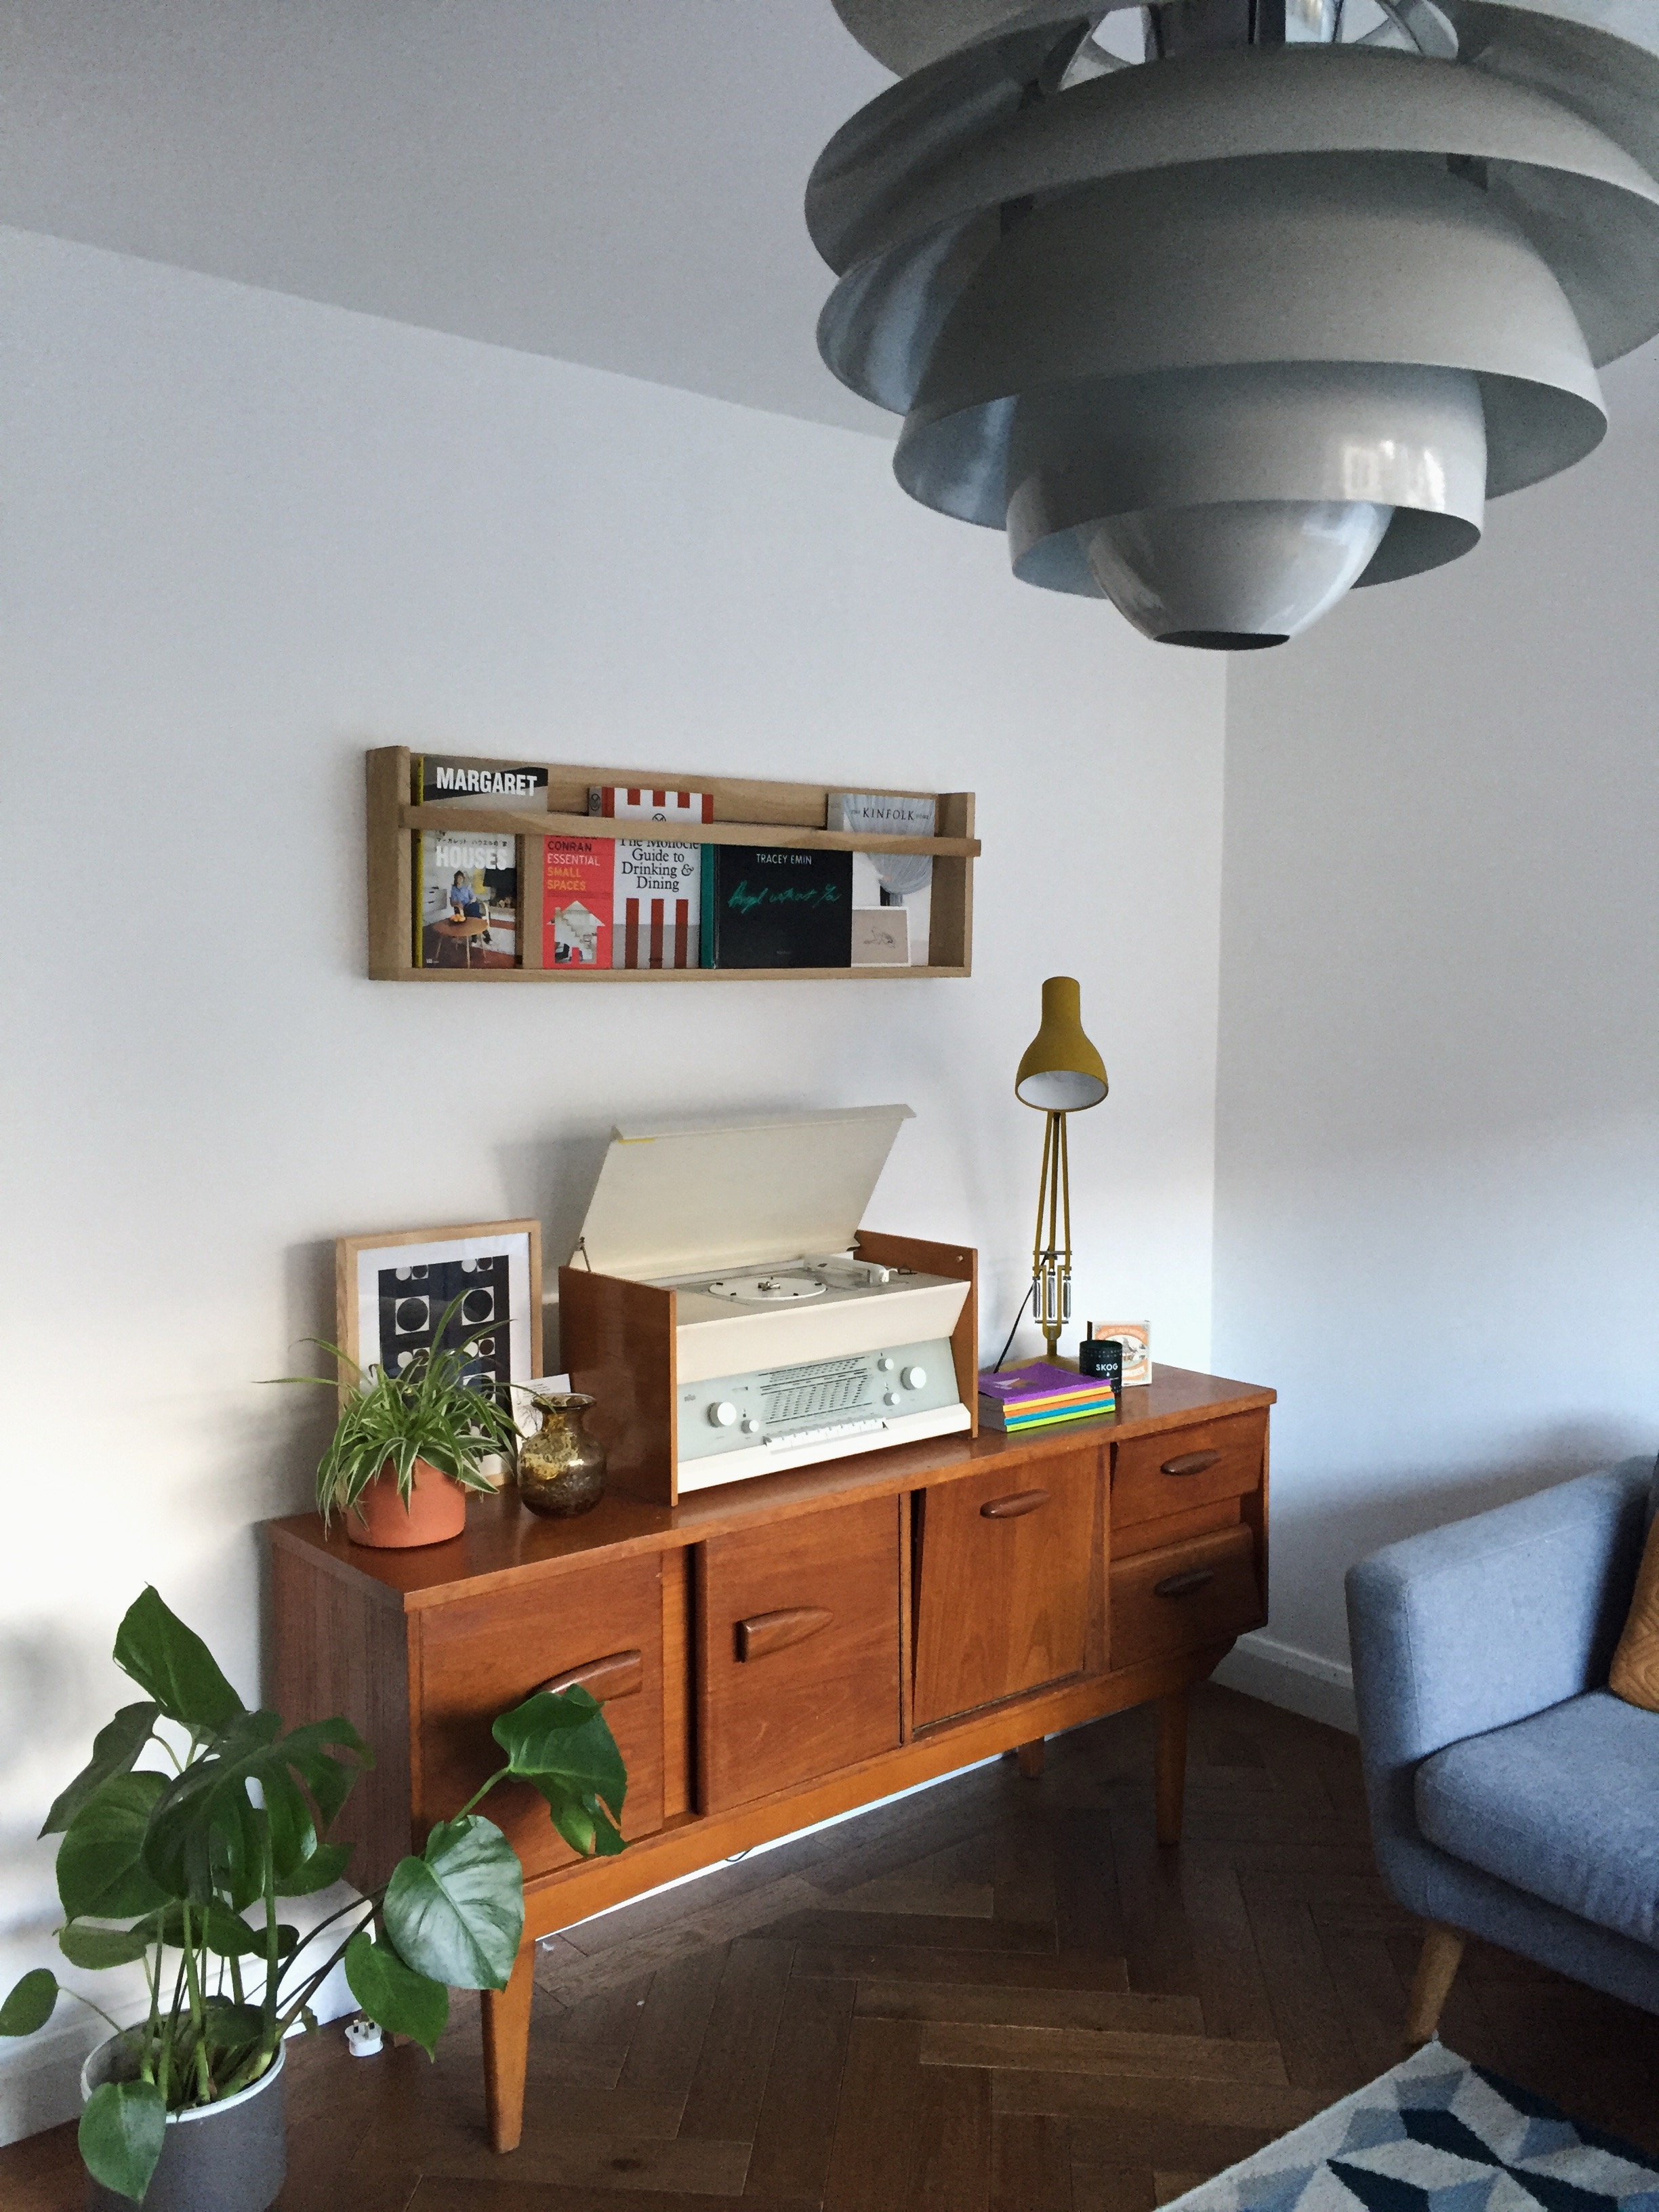 Image: Fifties G-Plan Teak Side Unit and Dieter Rams for Braun Stereo + Record Player both sourced from Ebay.